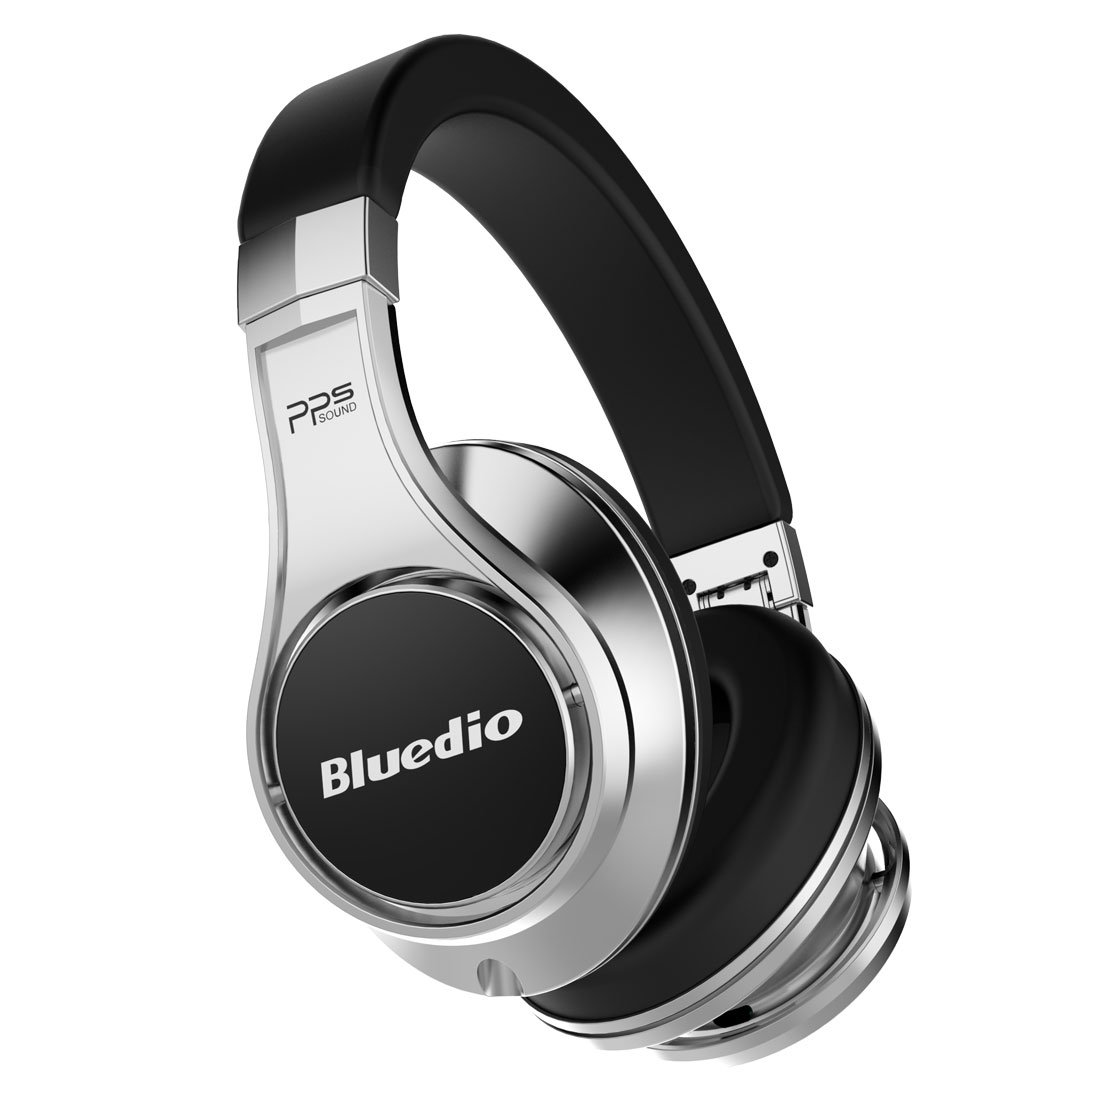 Bluedio U (UFO) Faith series High-End Bluetooth headphones Revolution Patented 8 Tracks /3D Sound Effect /Aluminum alloy build/Hi-Fi Rank wireless& wired Over-Ear headphones/headset with carrying hard case Gift-package (Black-Silver) CCK (HK) Co. Ltd.-